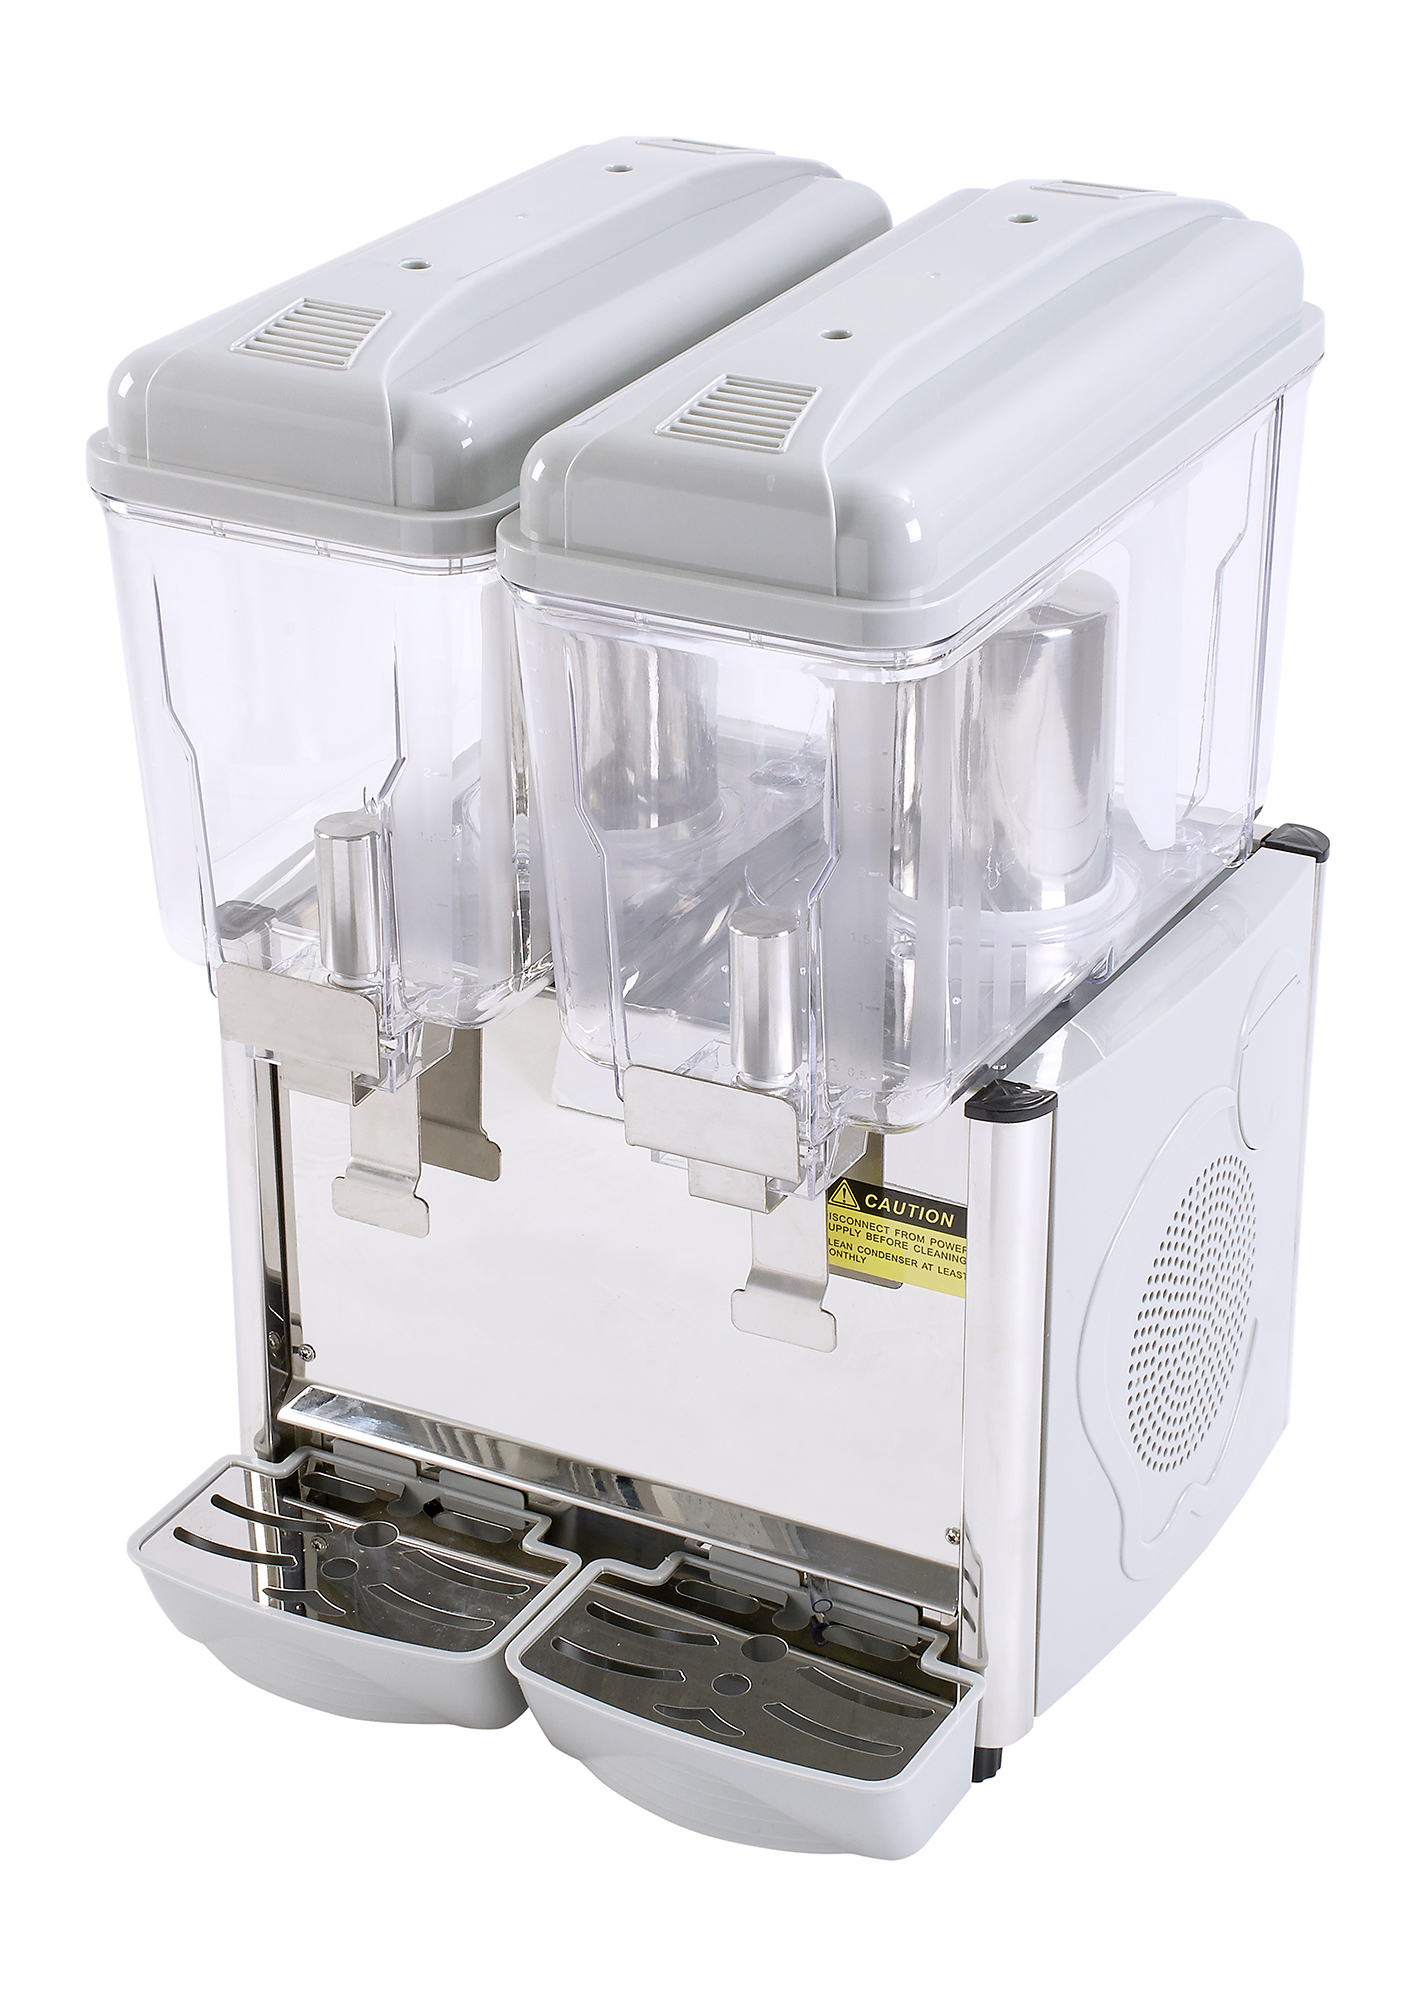 Admiral Craft JD-2 juice dispenser